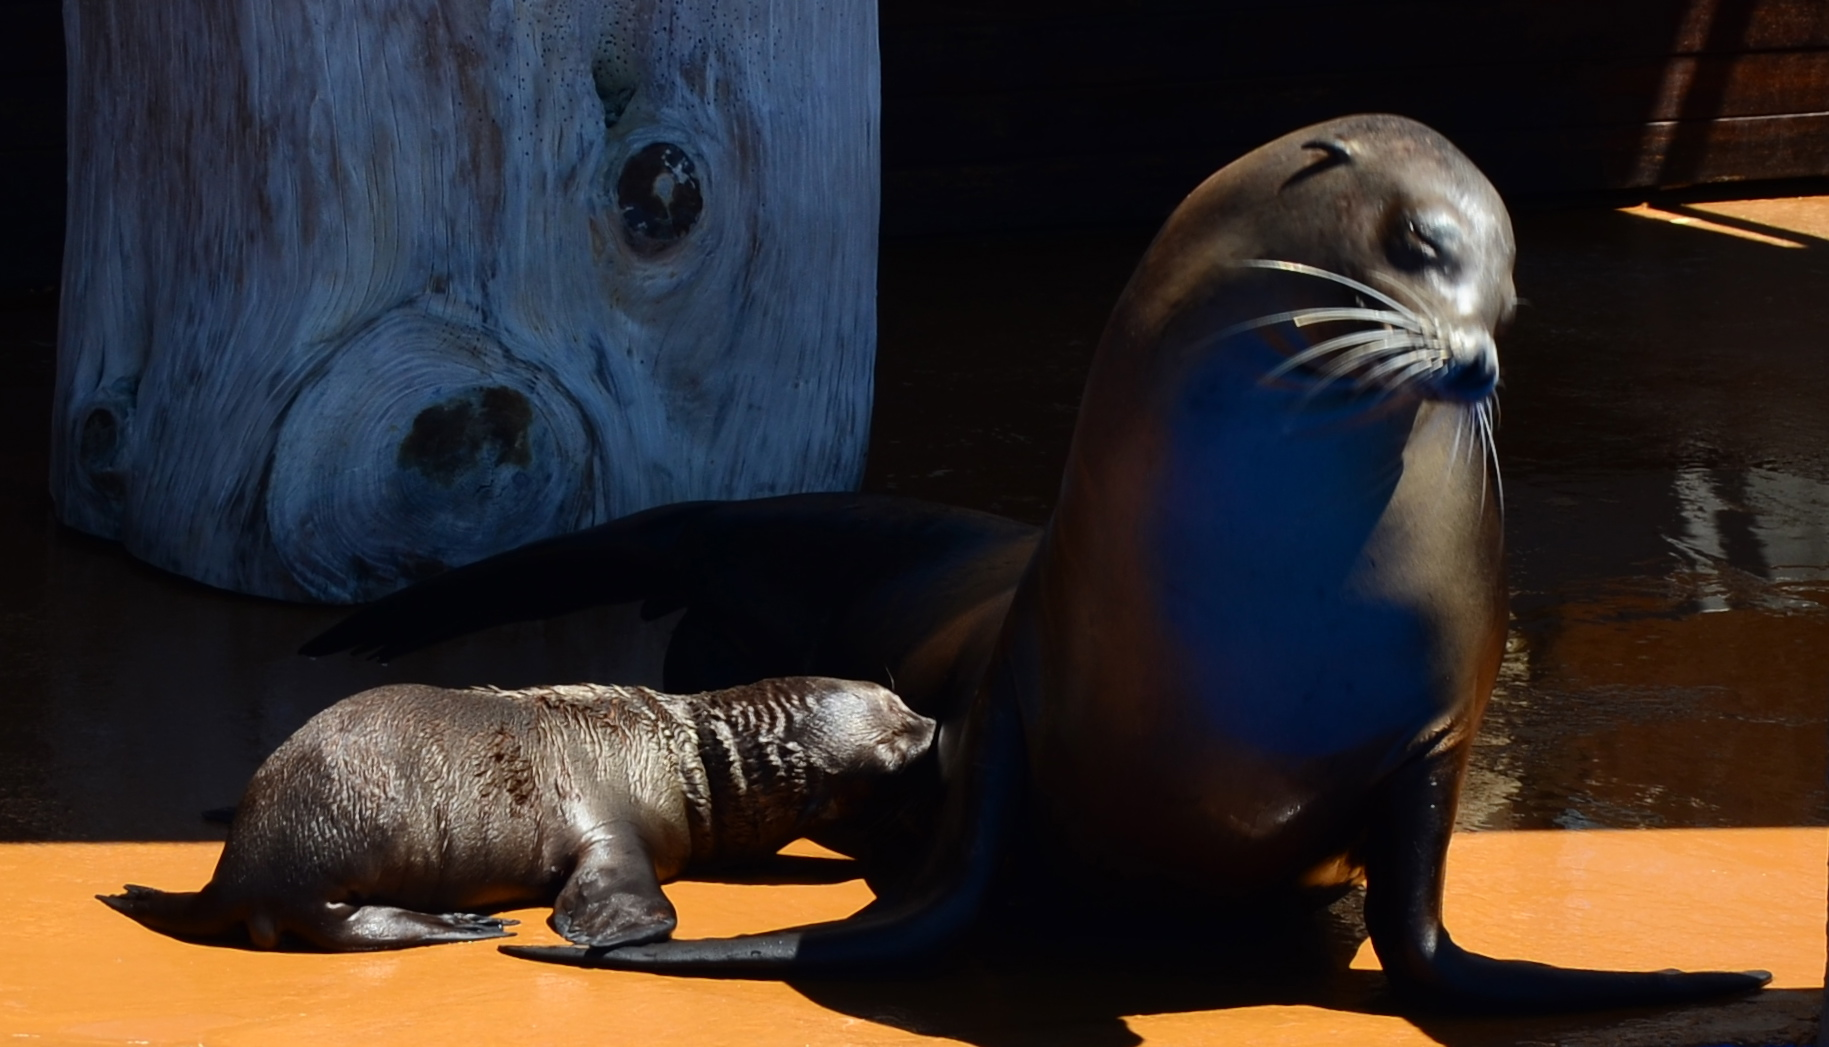 marine animals in captivity Marine mammals, like all animals in the wild,  alliance of marine mammal parks and aquariums supports the humane and lawful collection of marine mammals from.